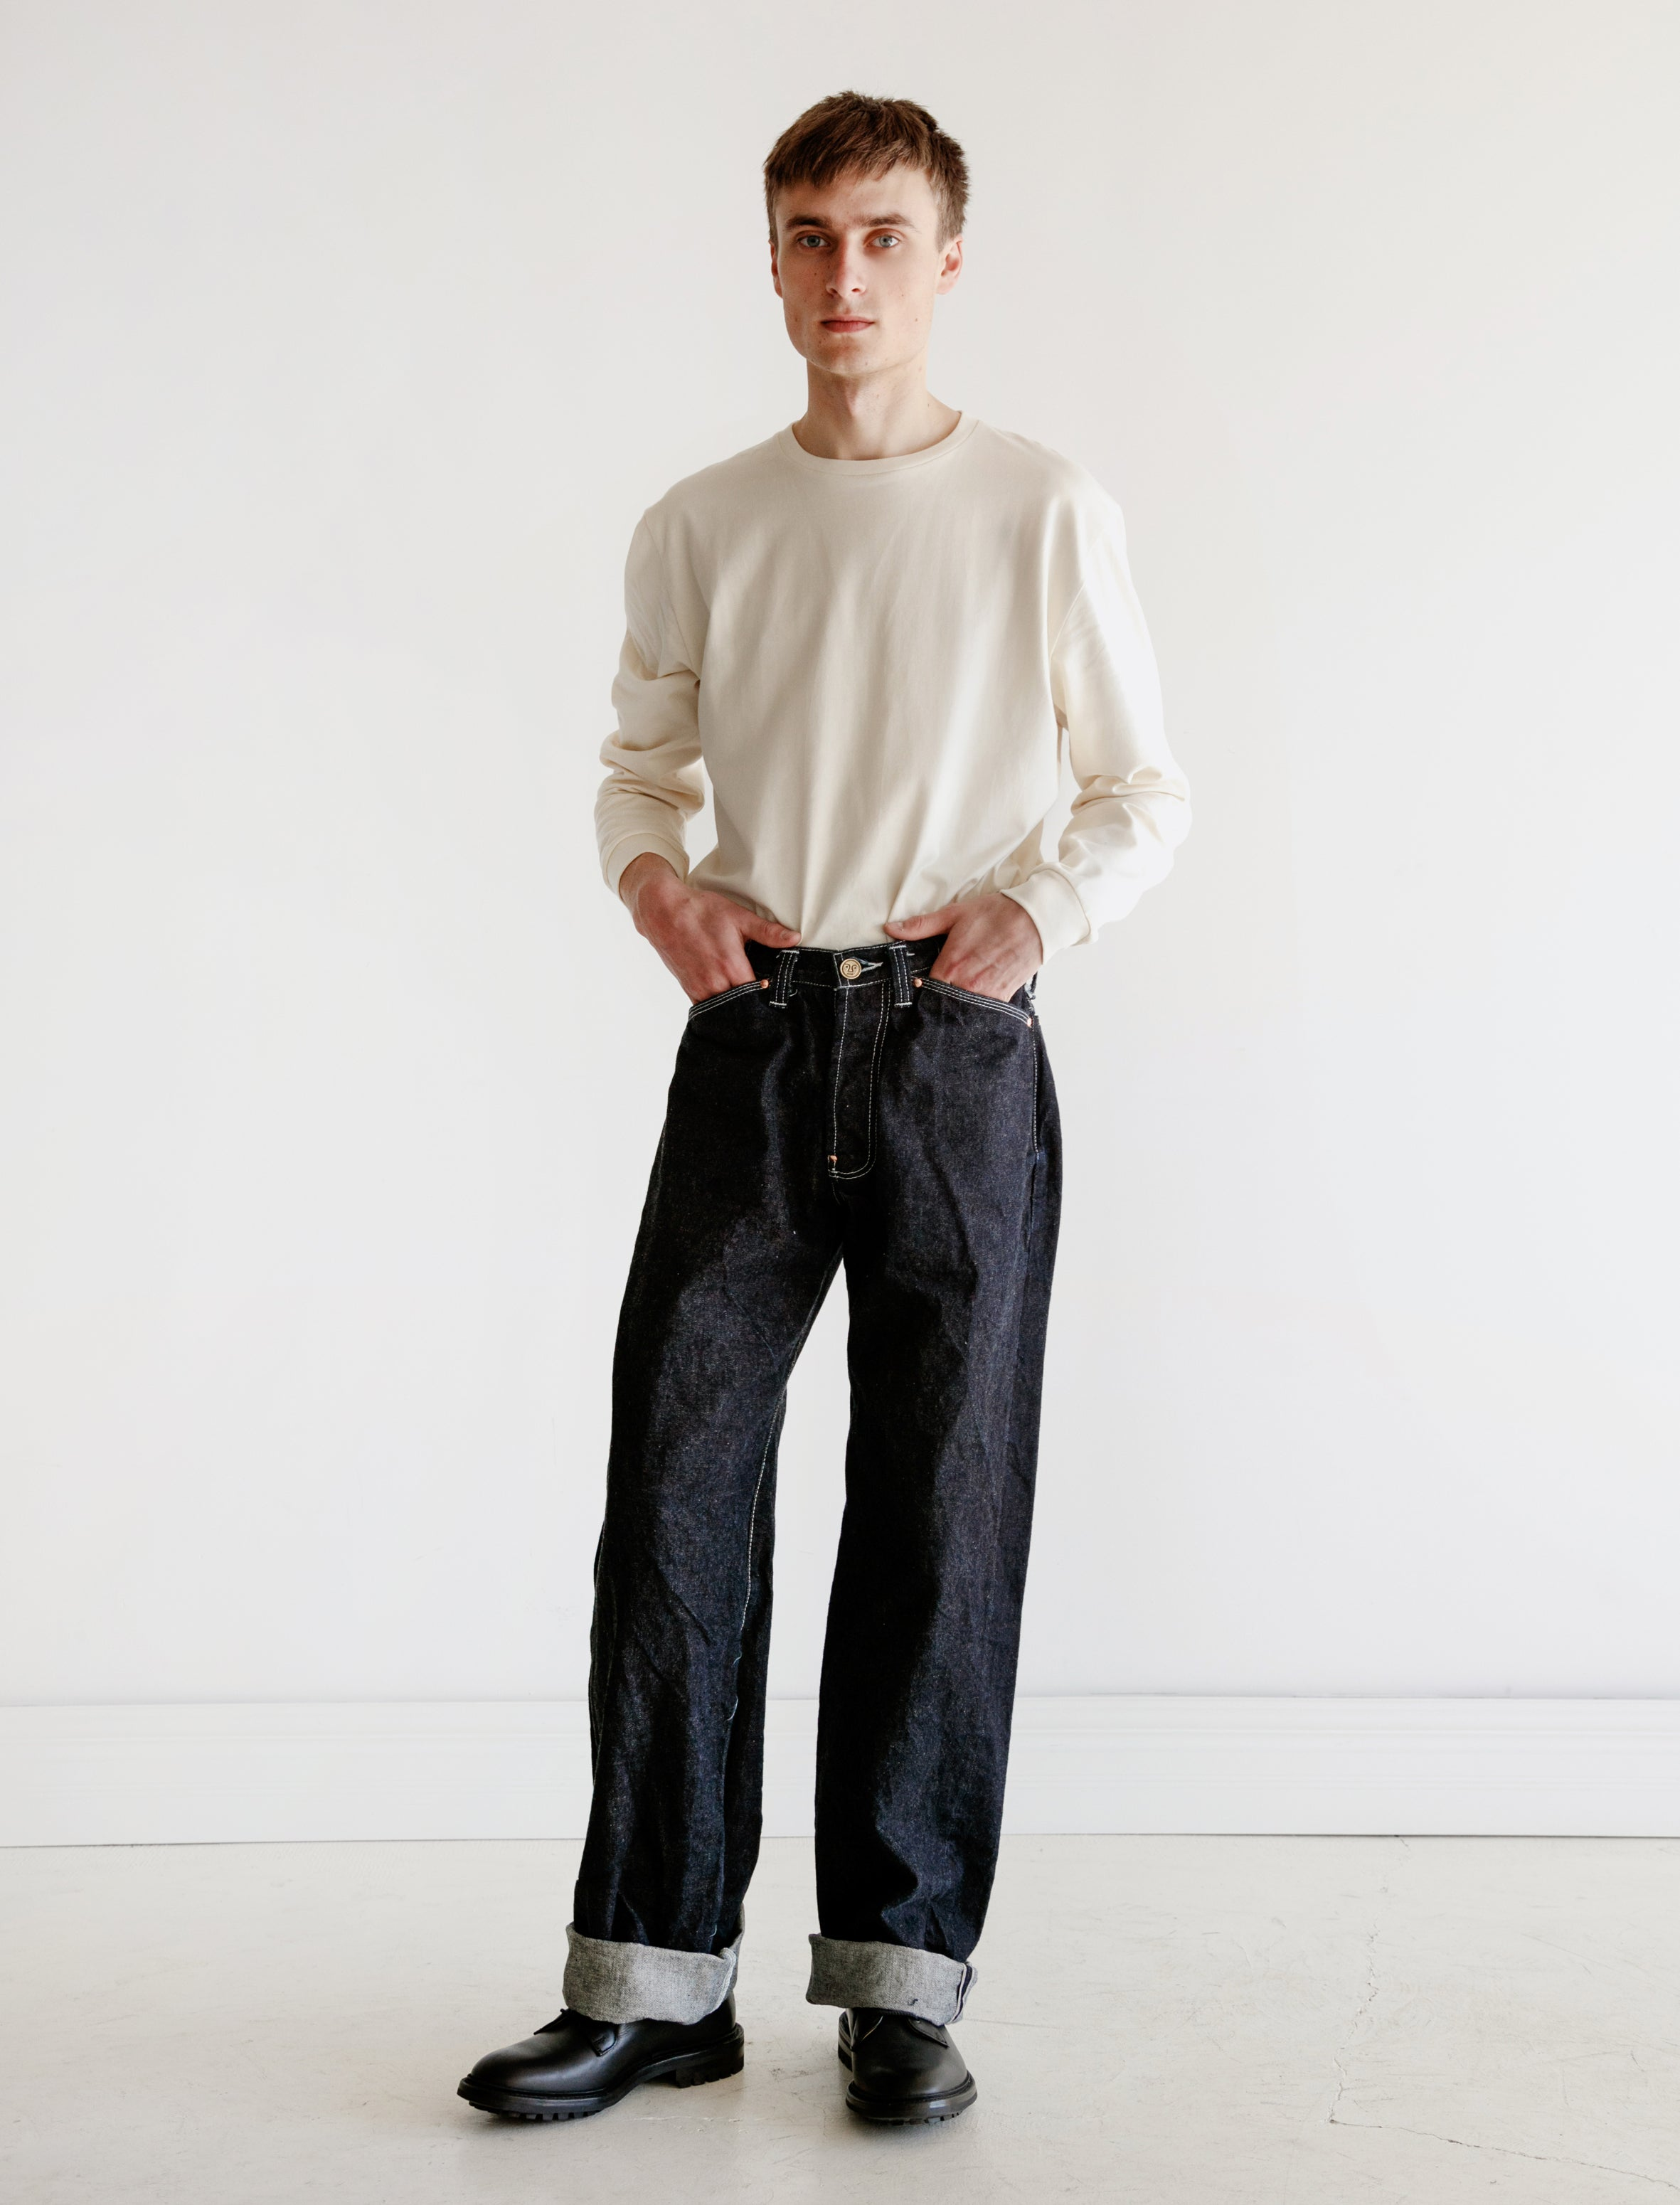 136 Oxford Jeans 16oz Selvedge Denim